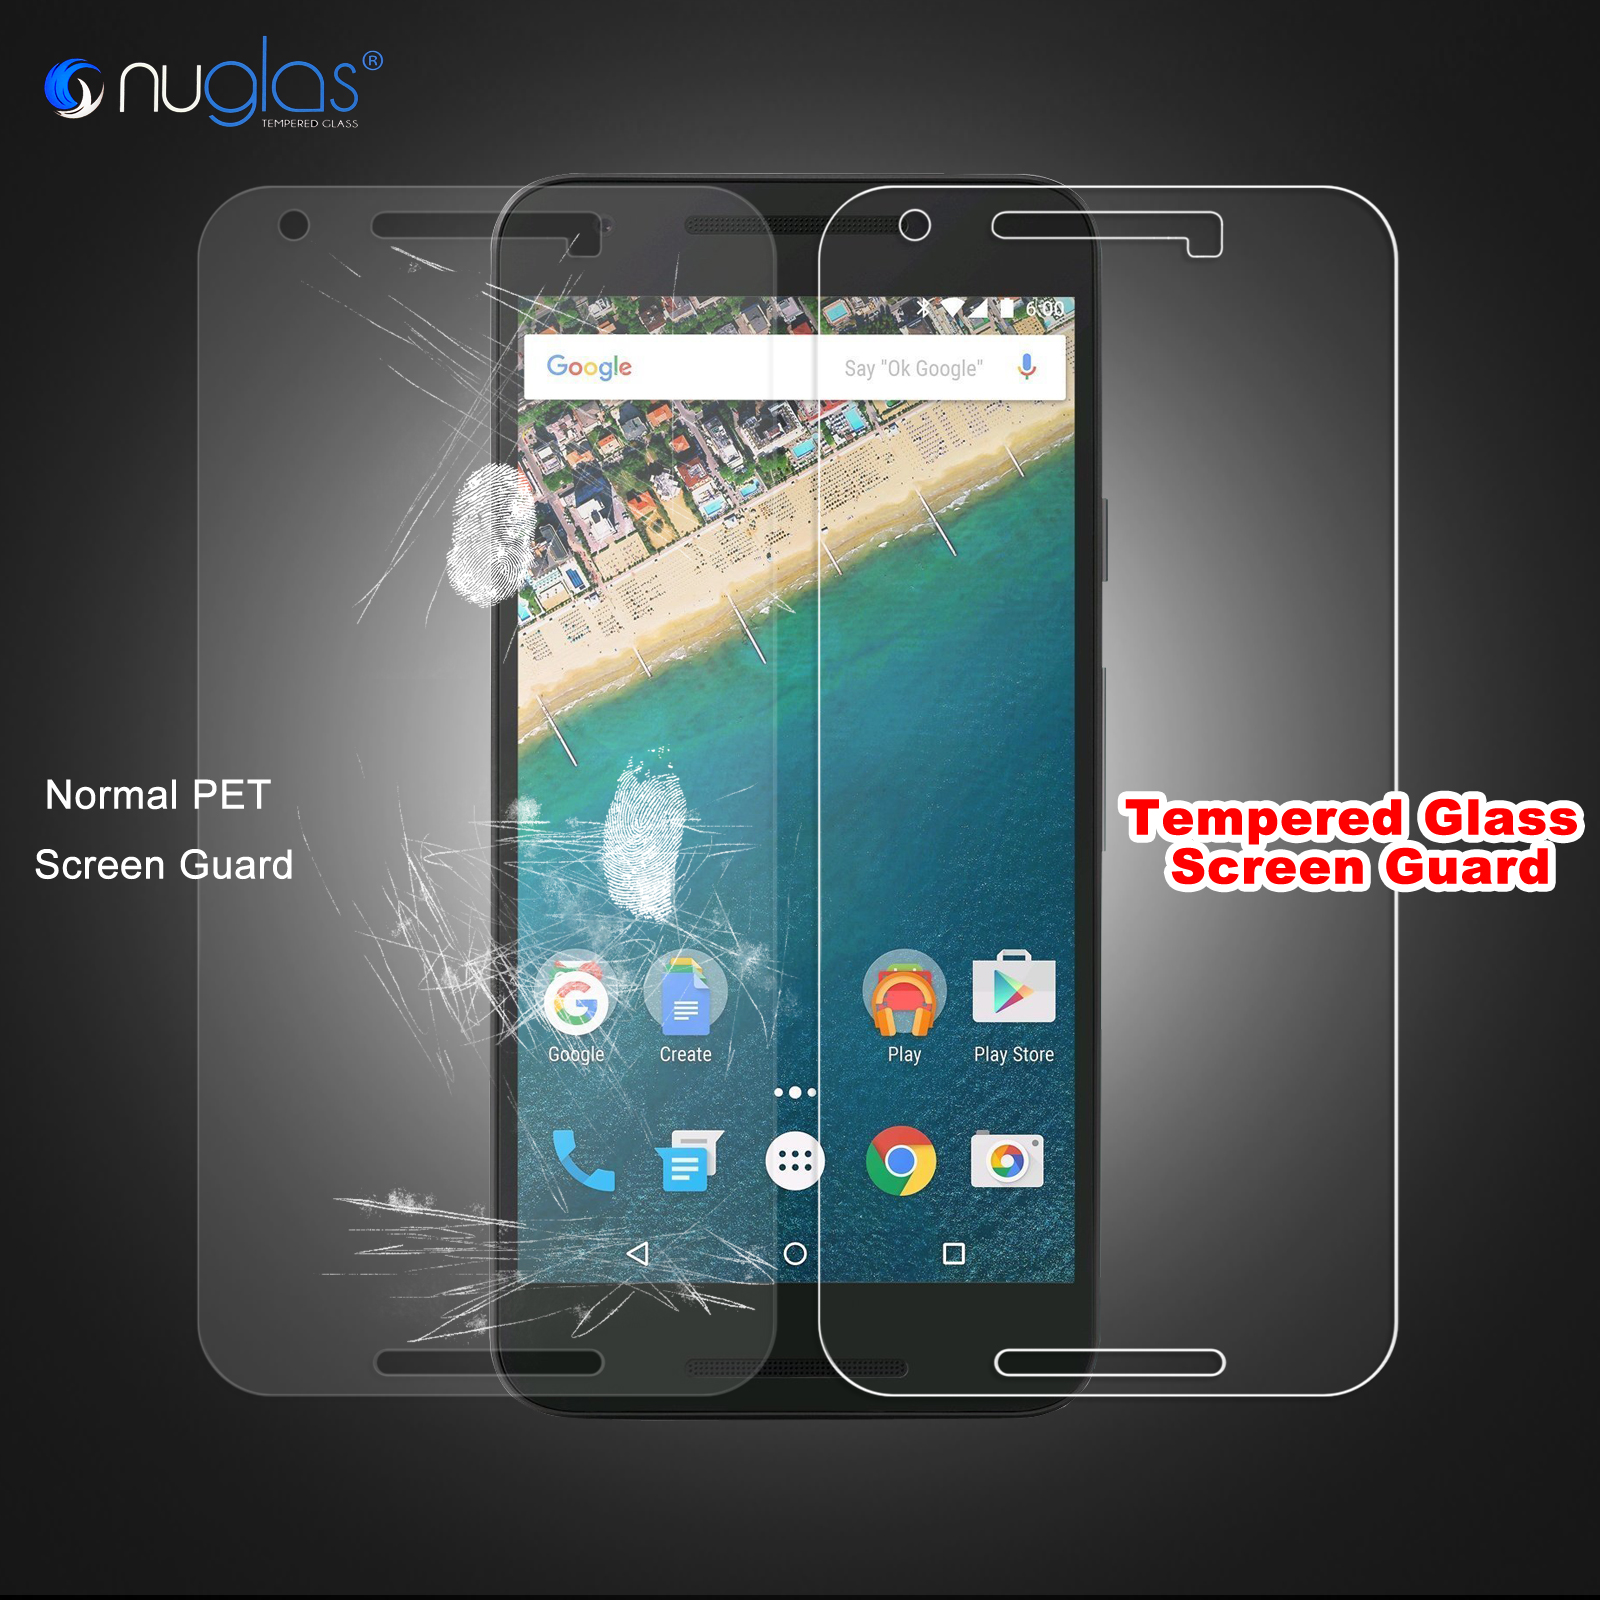 buy laptop nexus 5 glass screen protector amazon down the